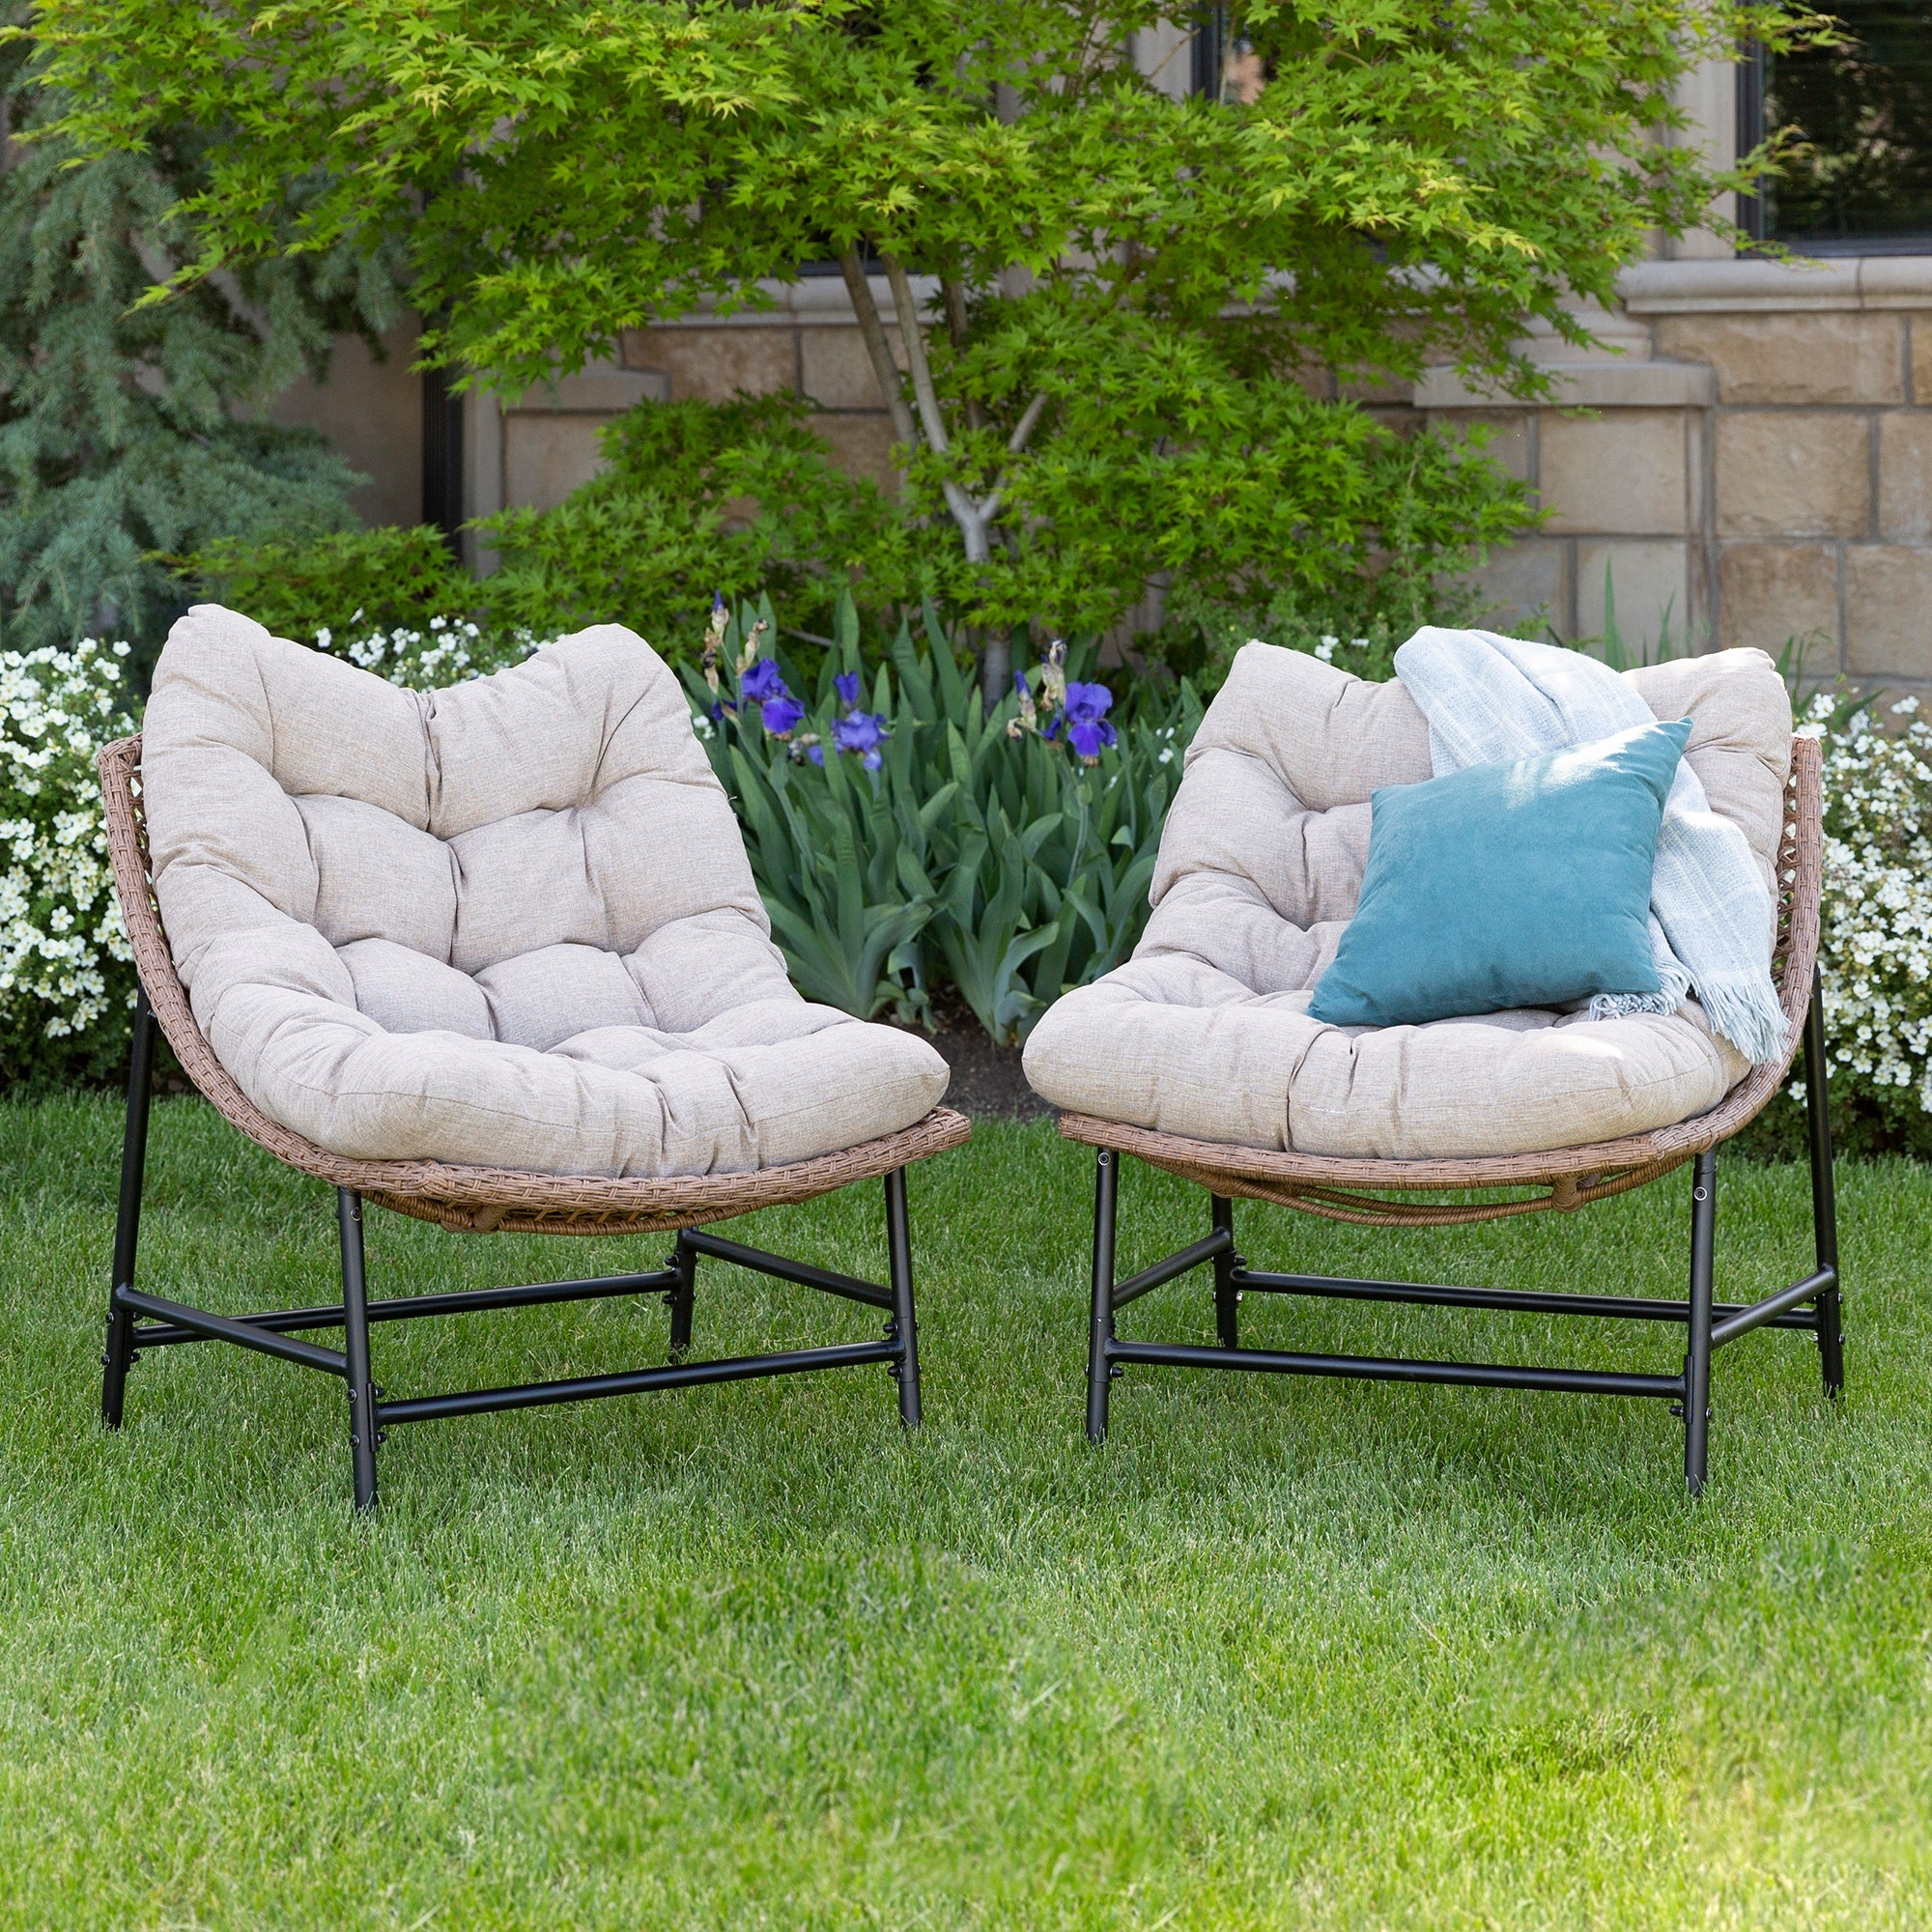 Outdoor Rattan Papasan Chairs With Cushions, Set Of 2 Inside Decker Papasan Chairs (View 10 of 15)